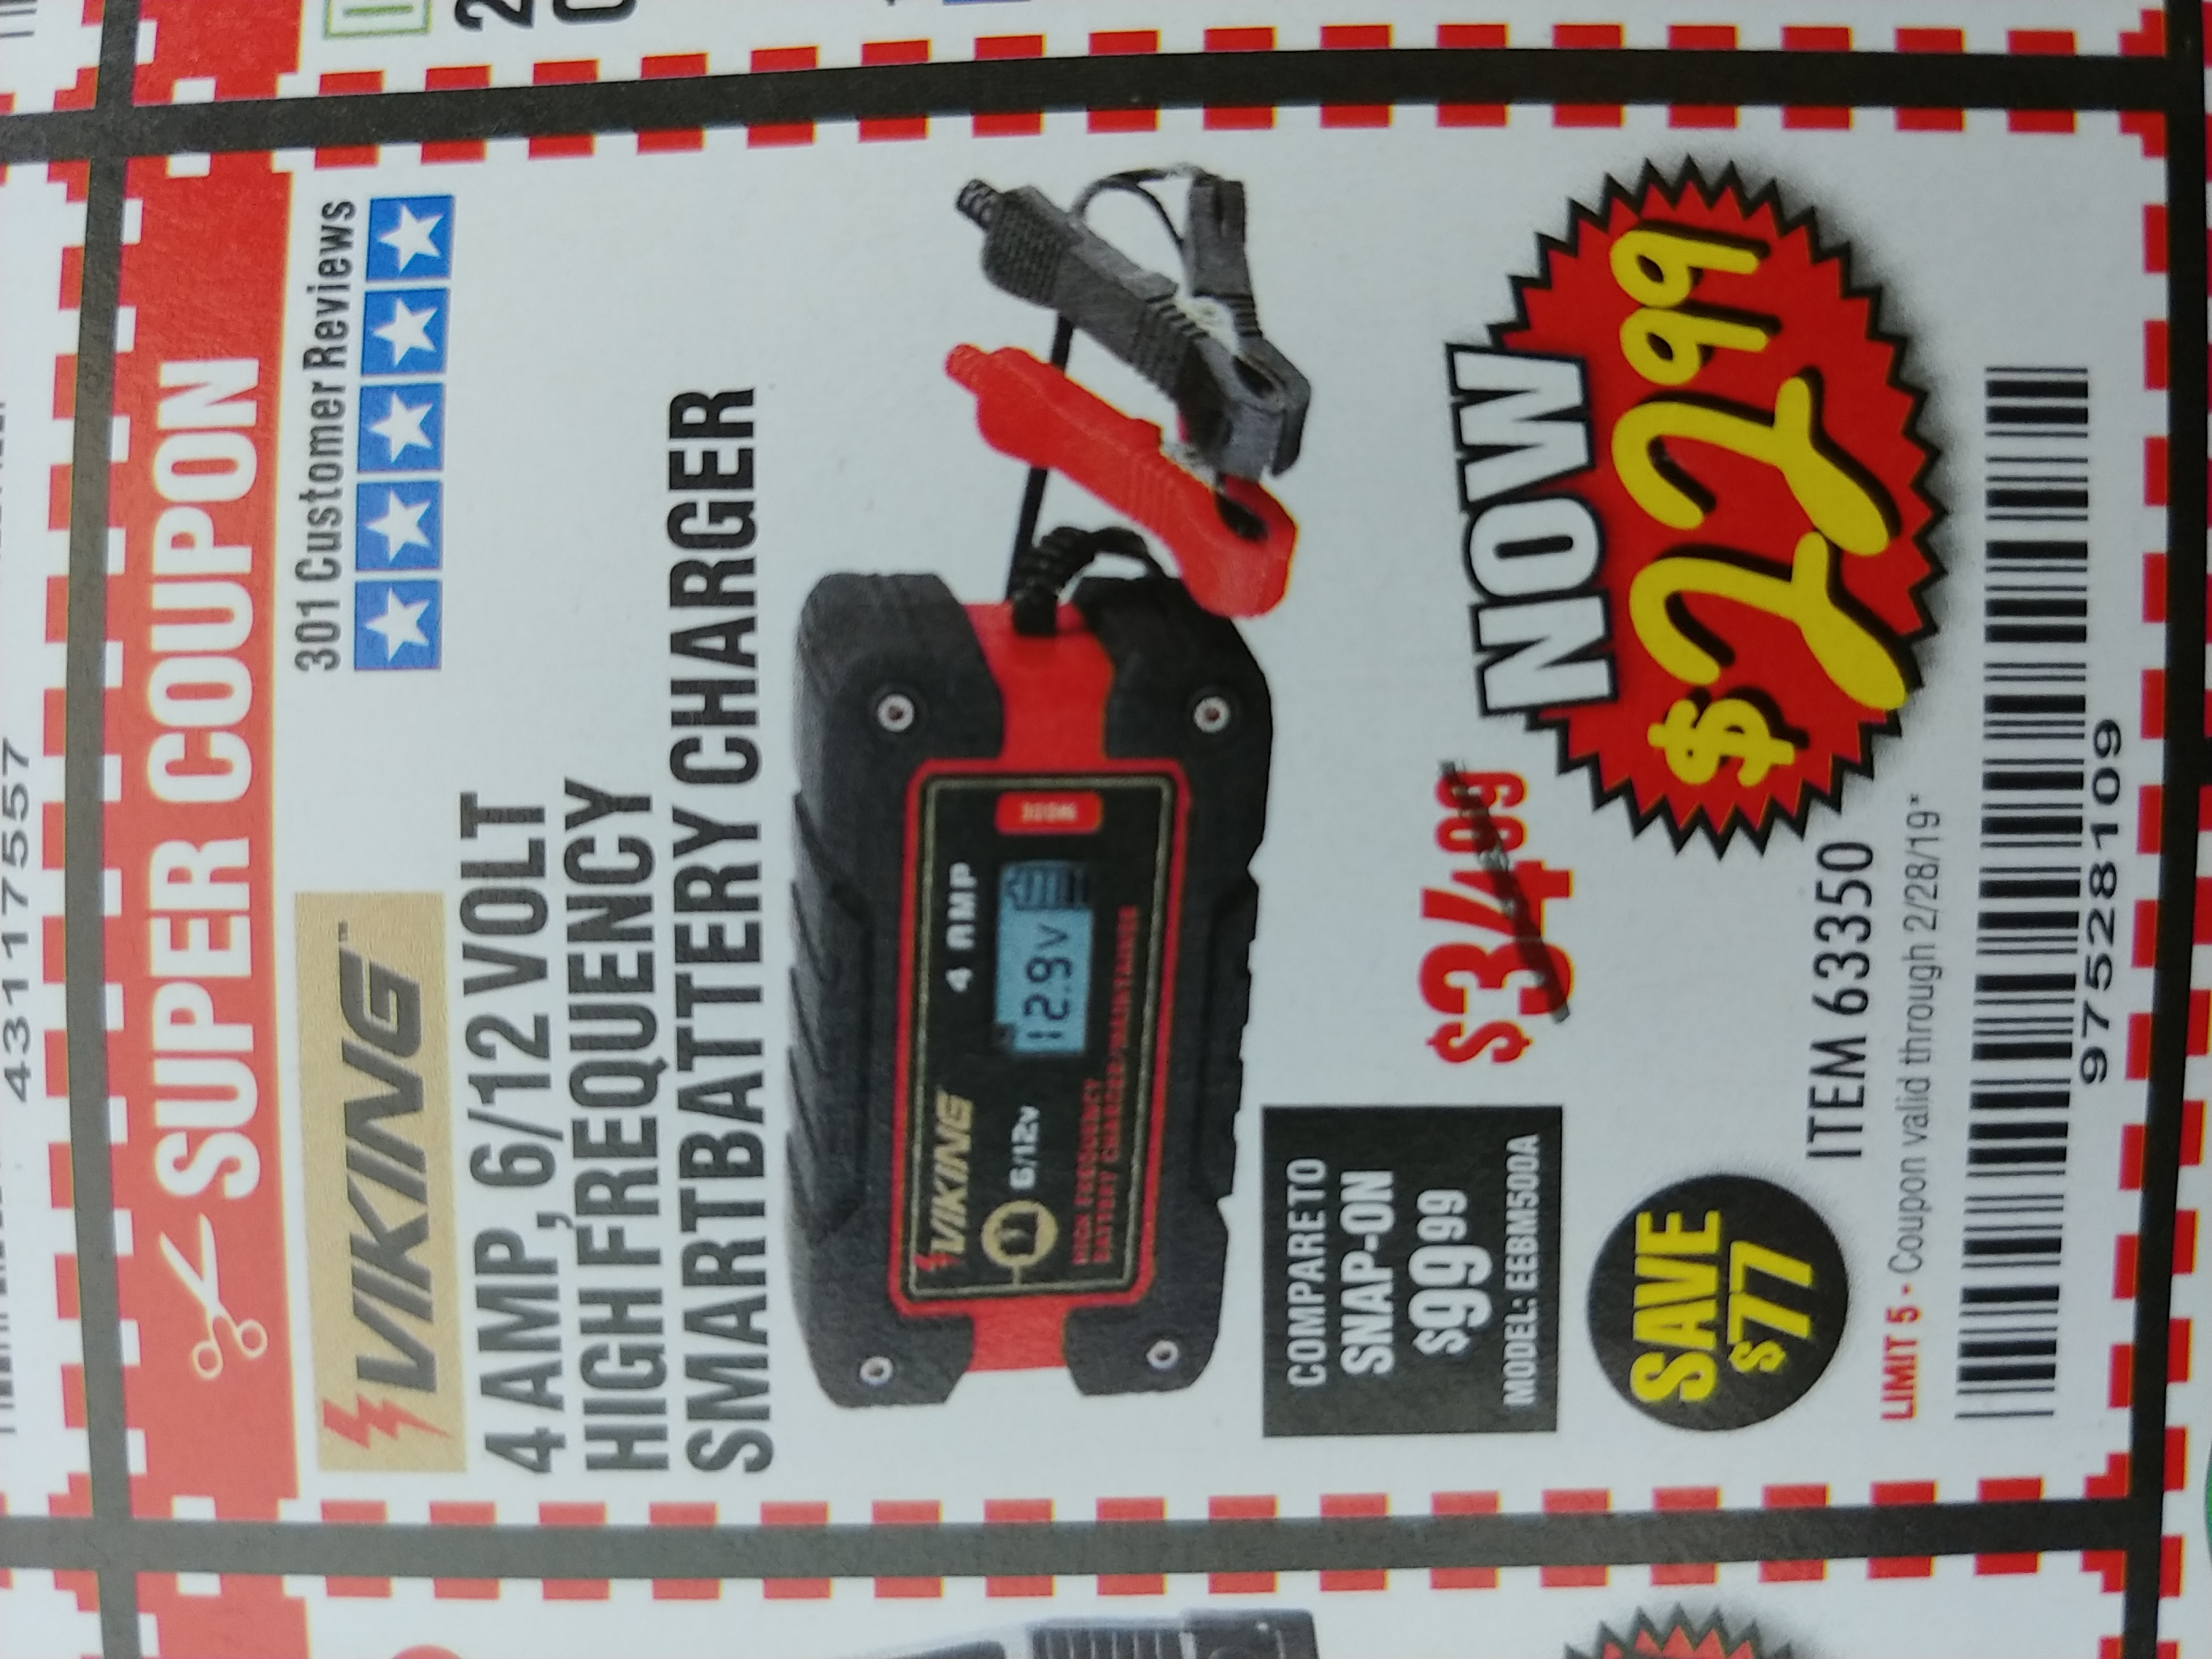 www.hfqpdb.com - 4AMP 6/12V HIGH FREQUENCY SMART BATTERY CHARGER Lot No. 63350